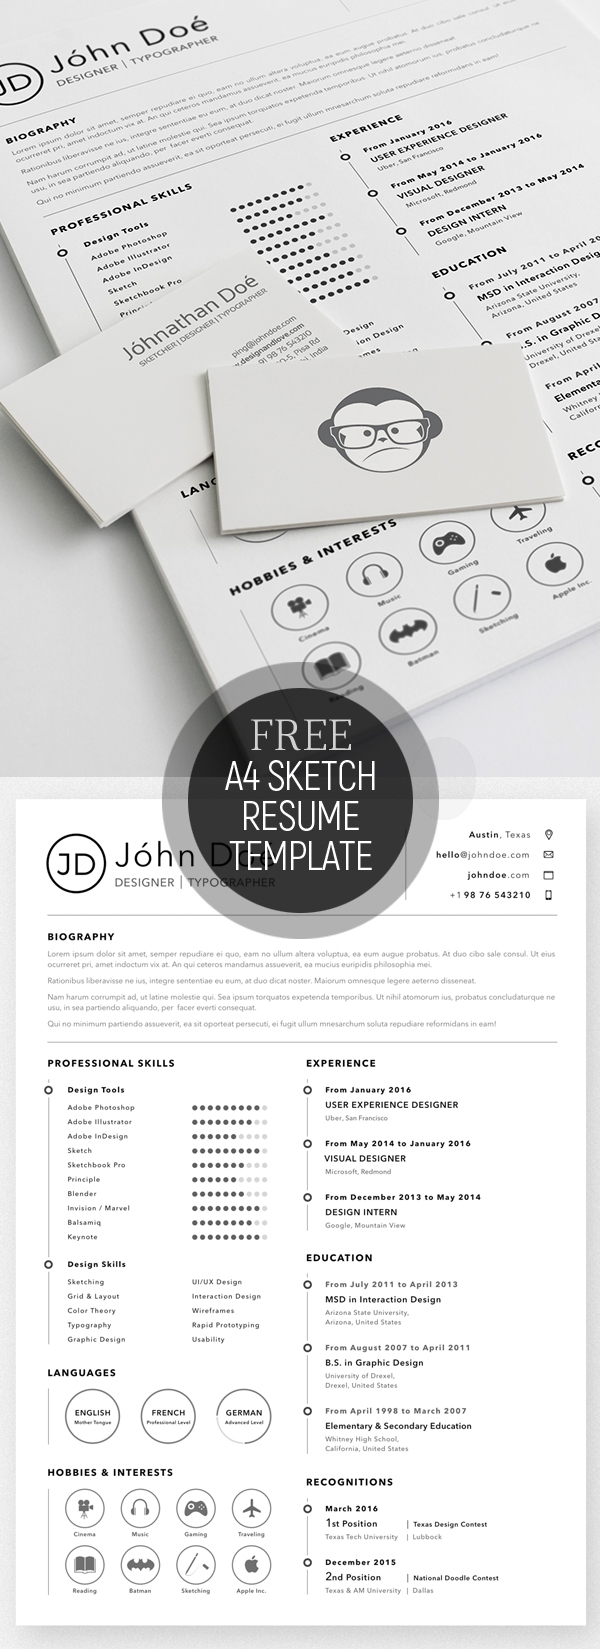 download resume from uptowork free